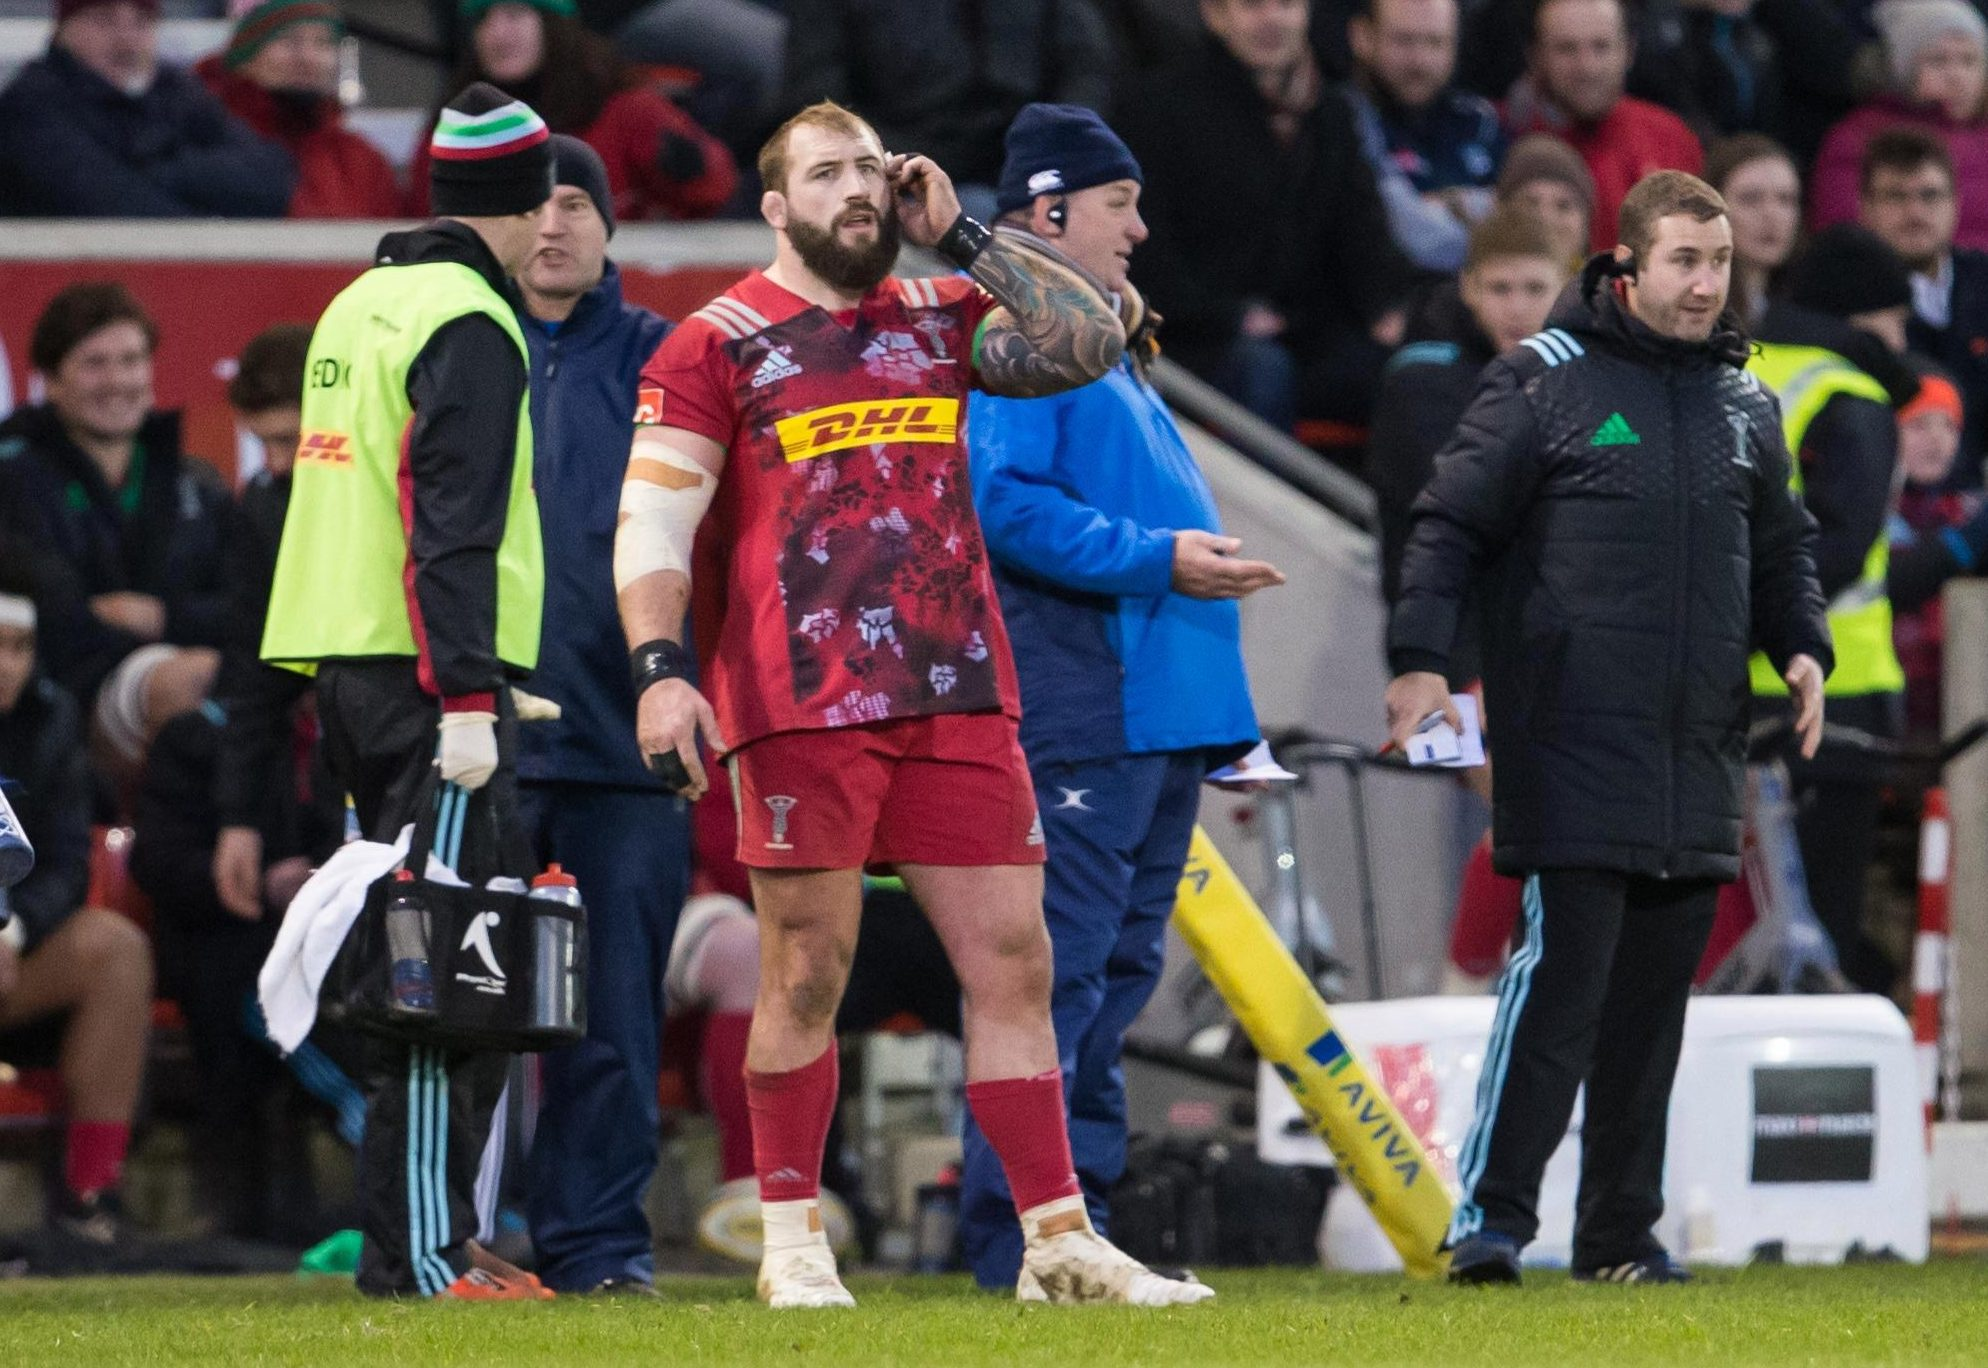 Marler waited on the sidelines in January to hear the result of the TMO, before getting a red card